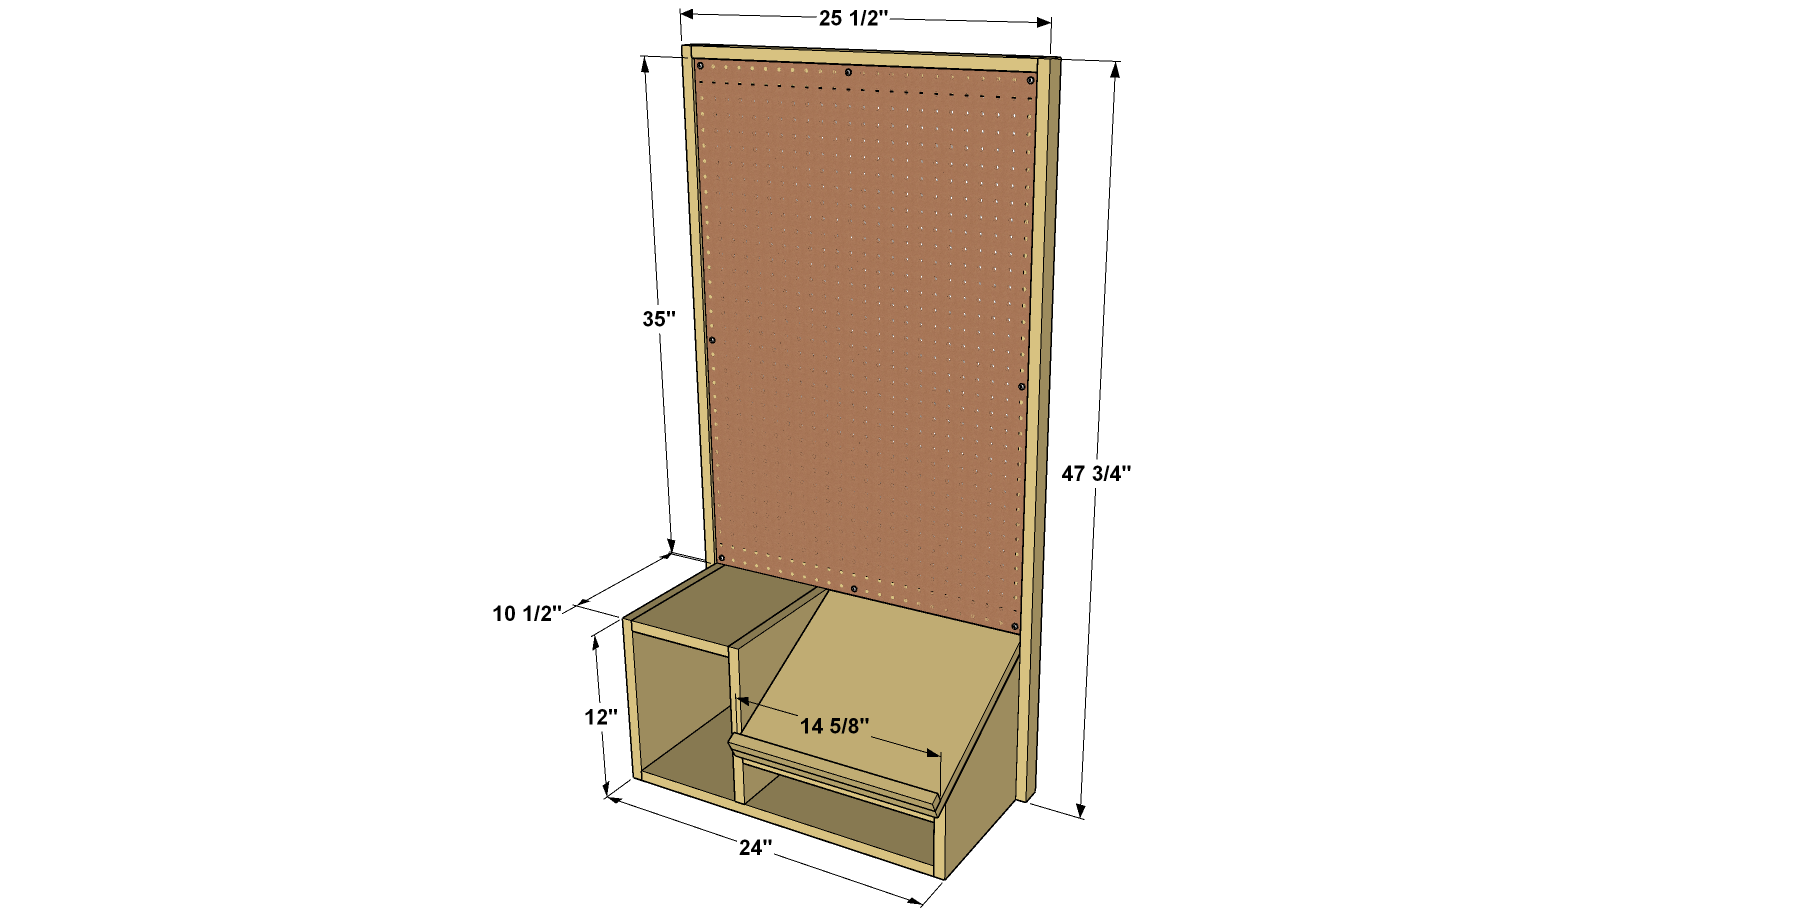 tool-storage-center-overall-with-dimensions